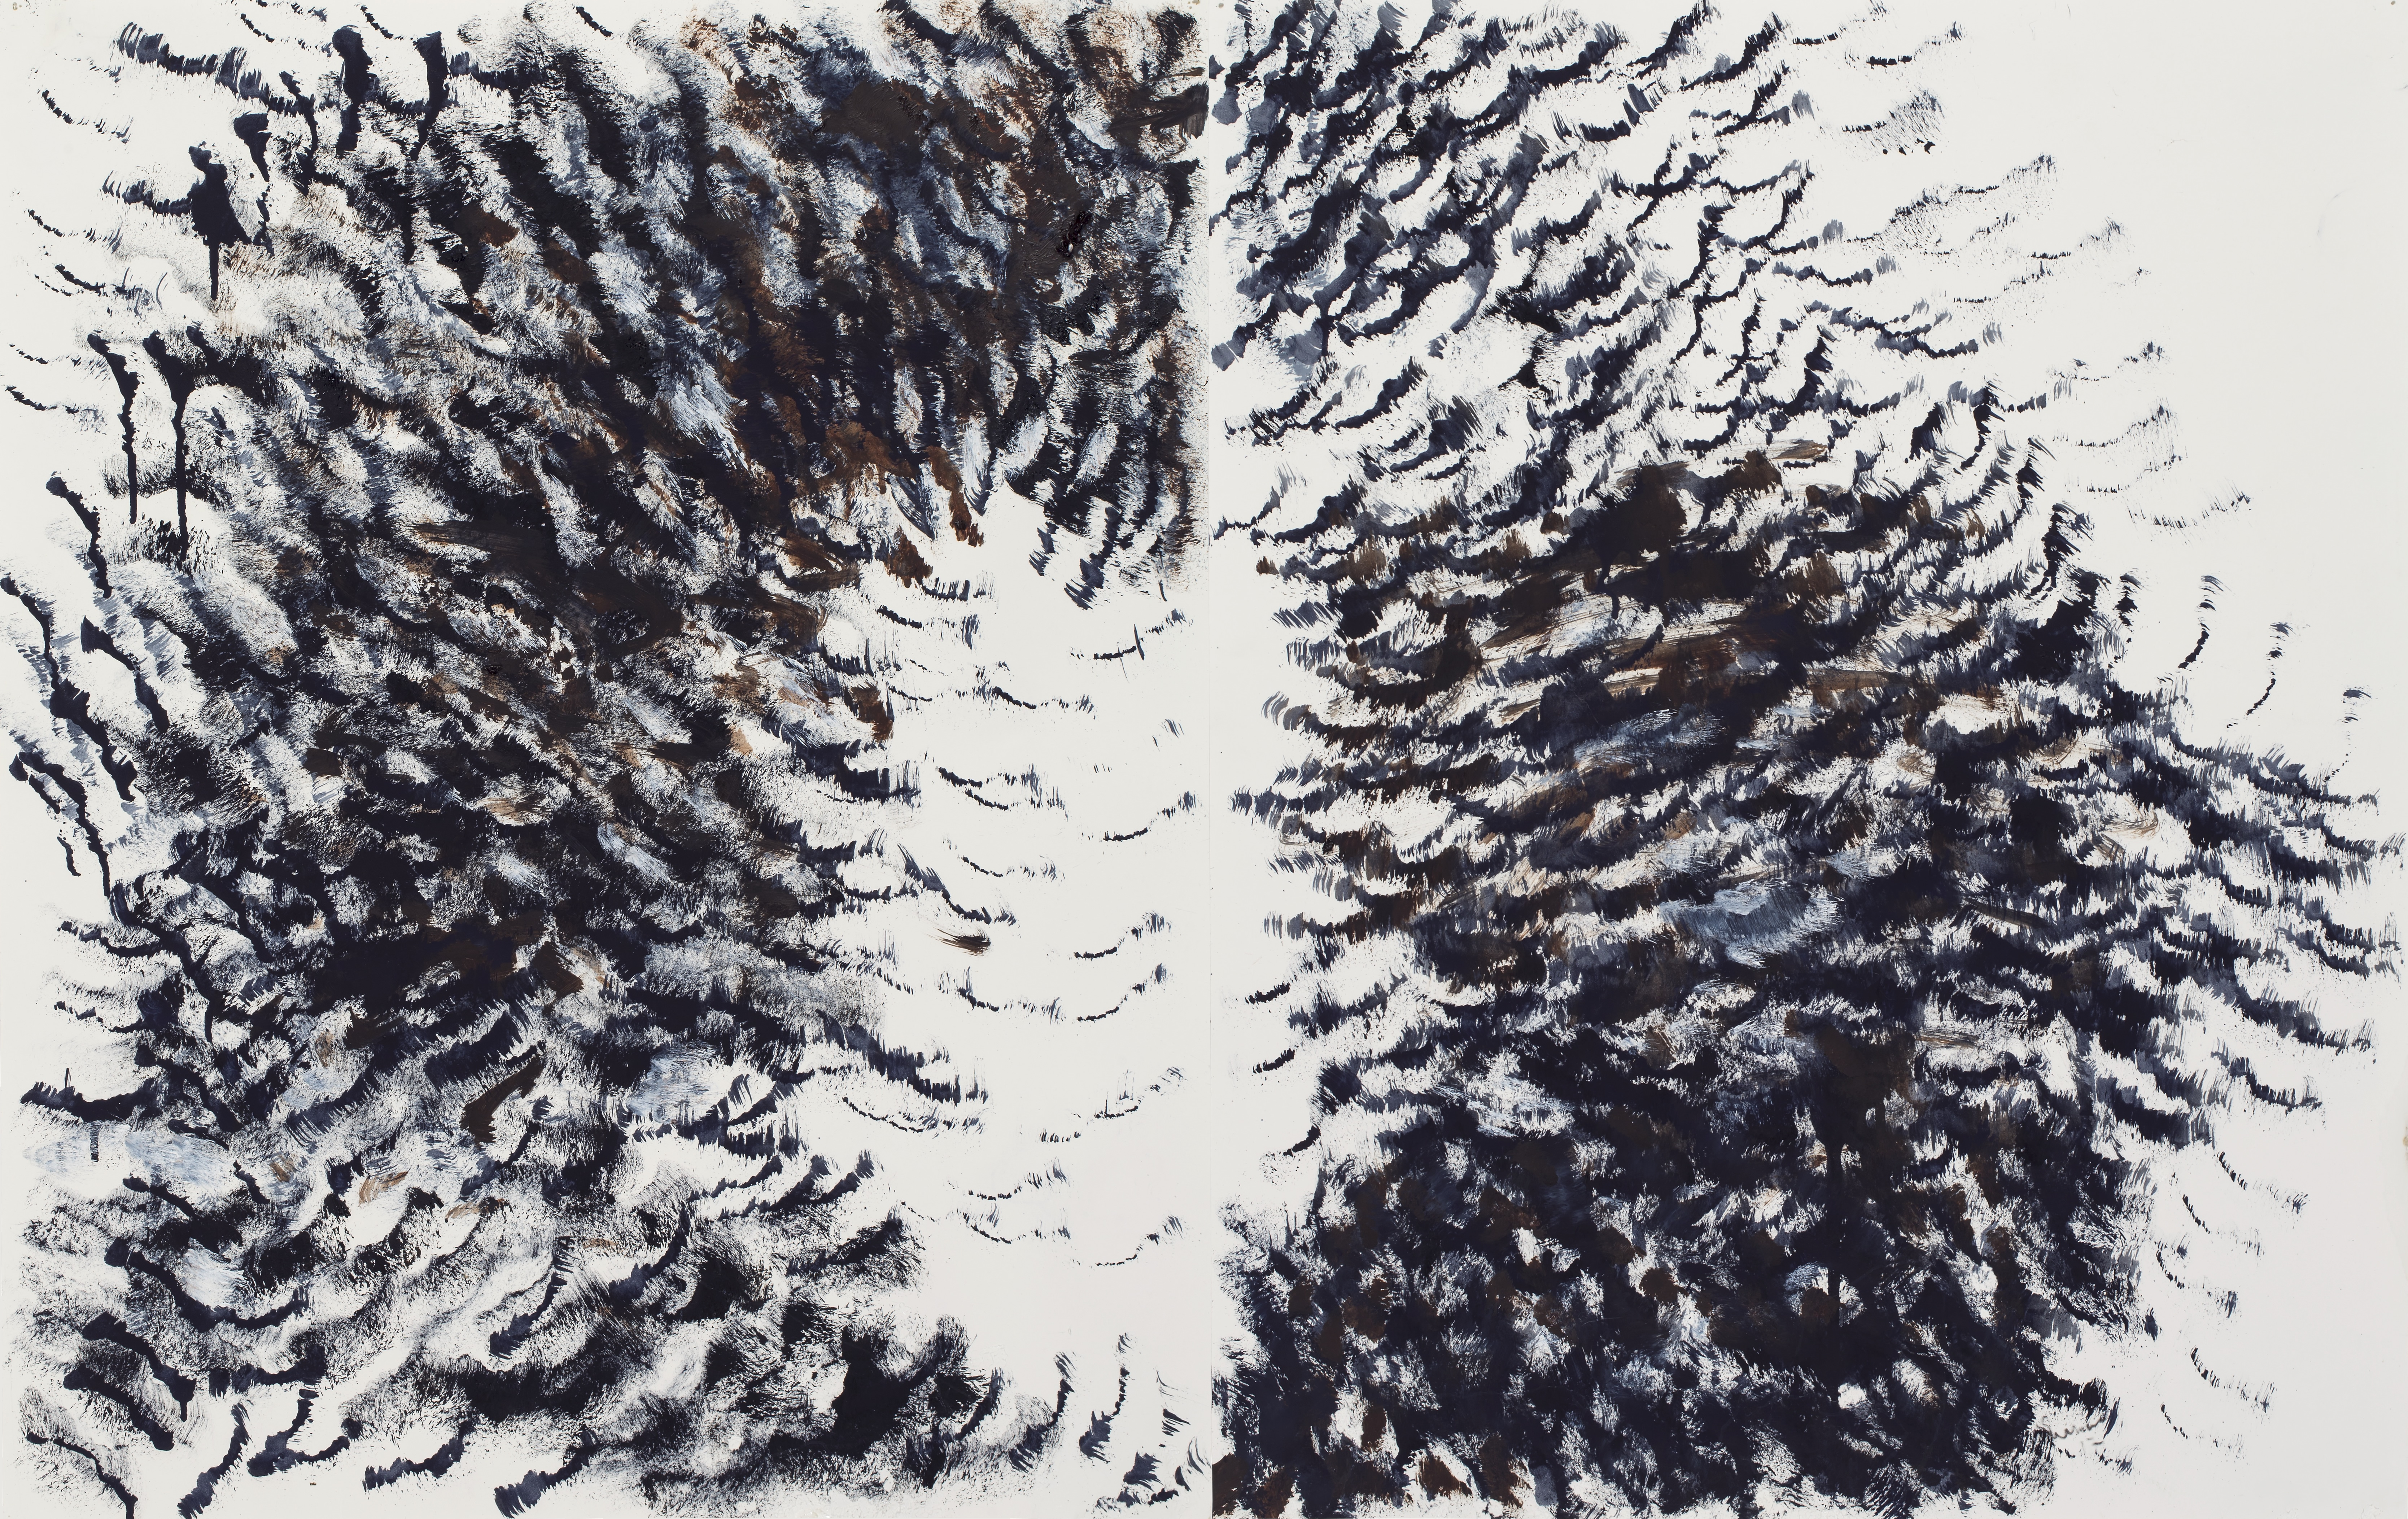 Crows in Flight diptych